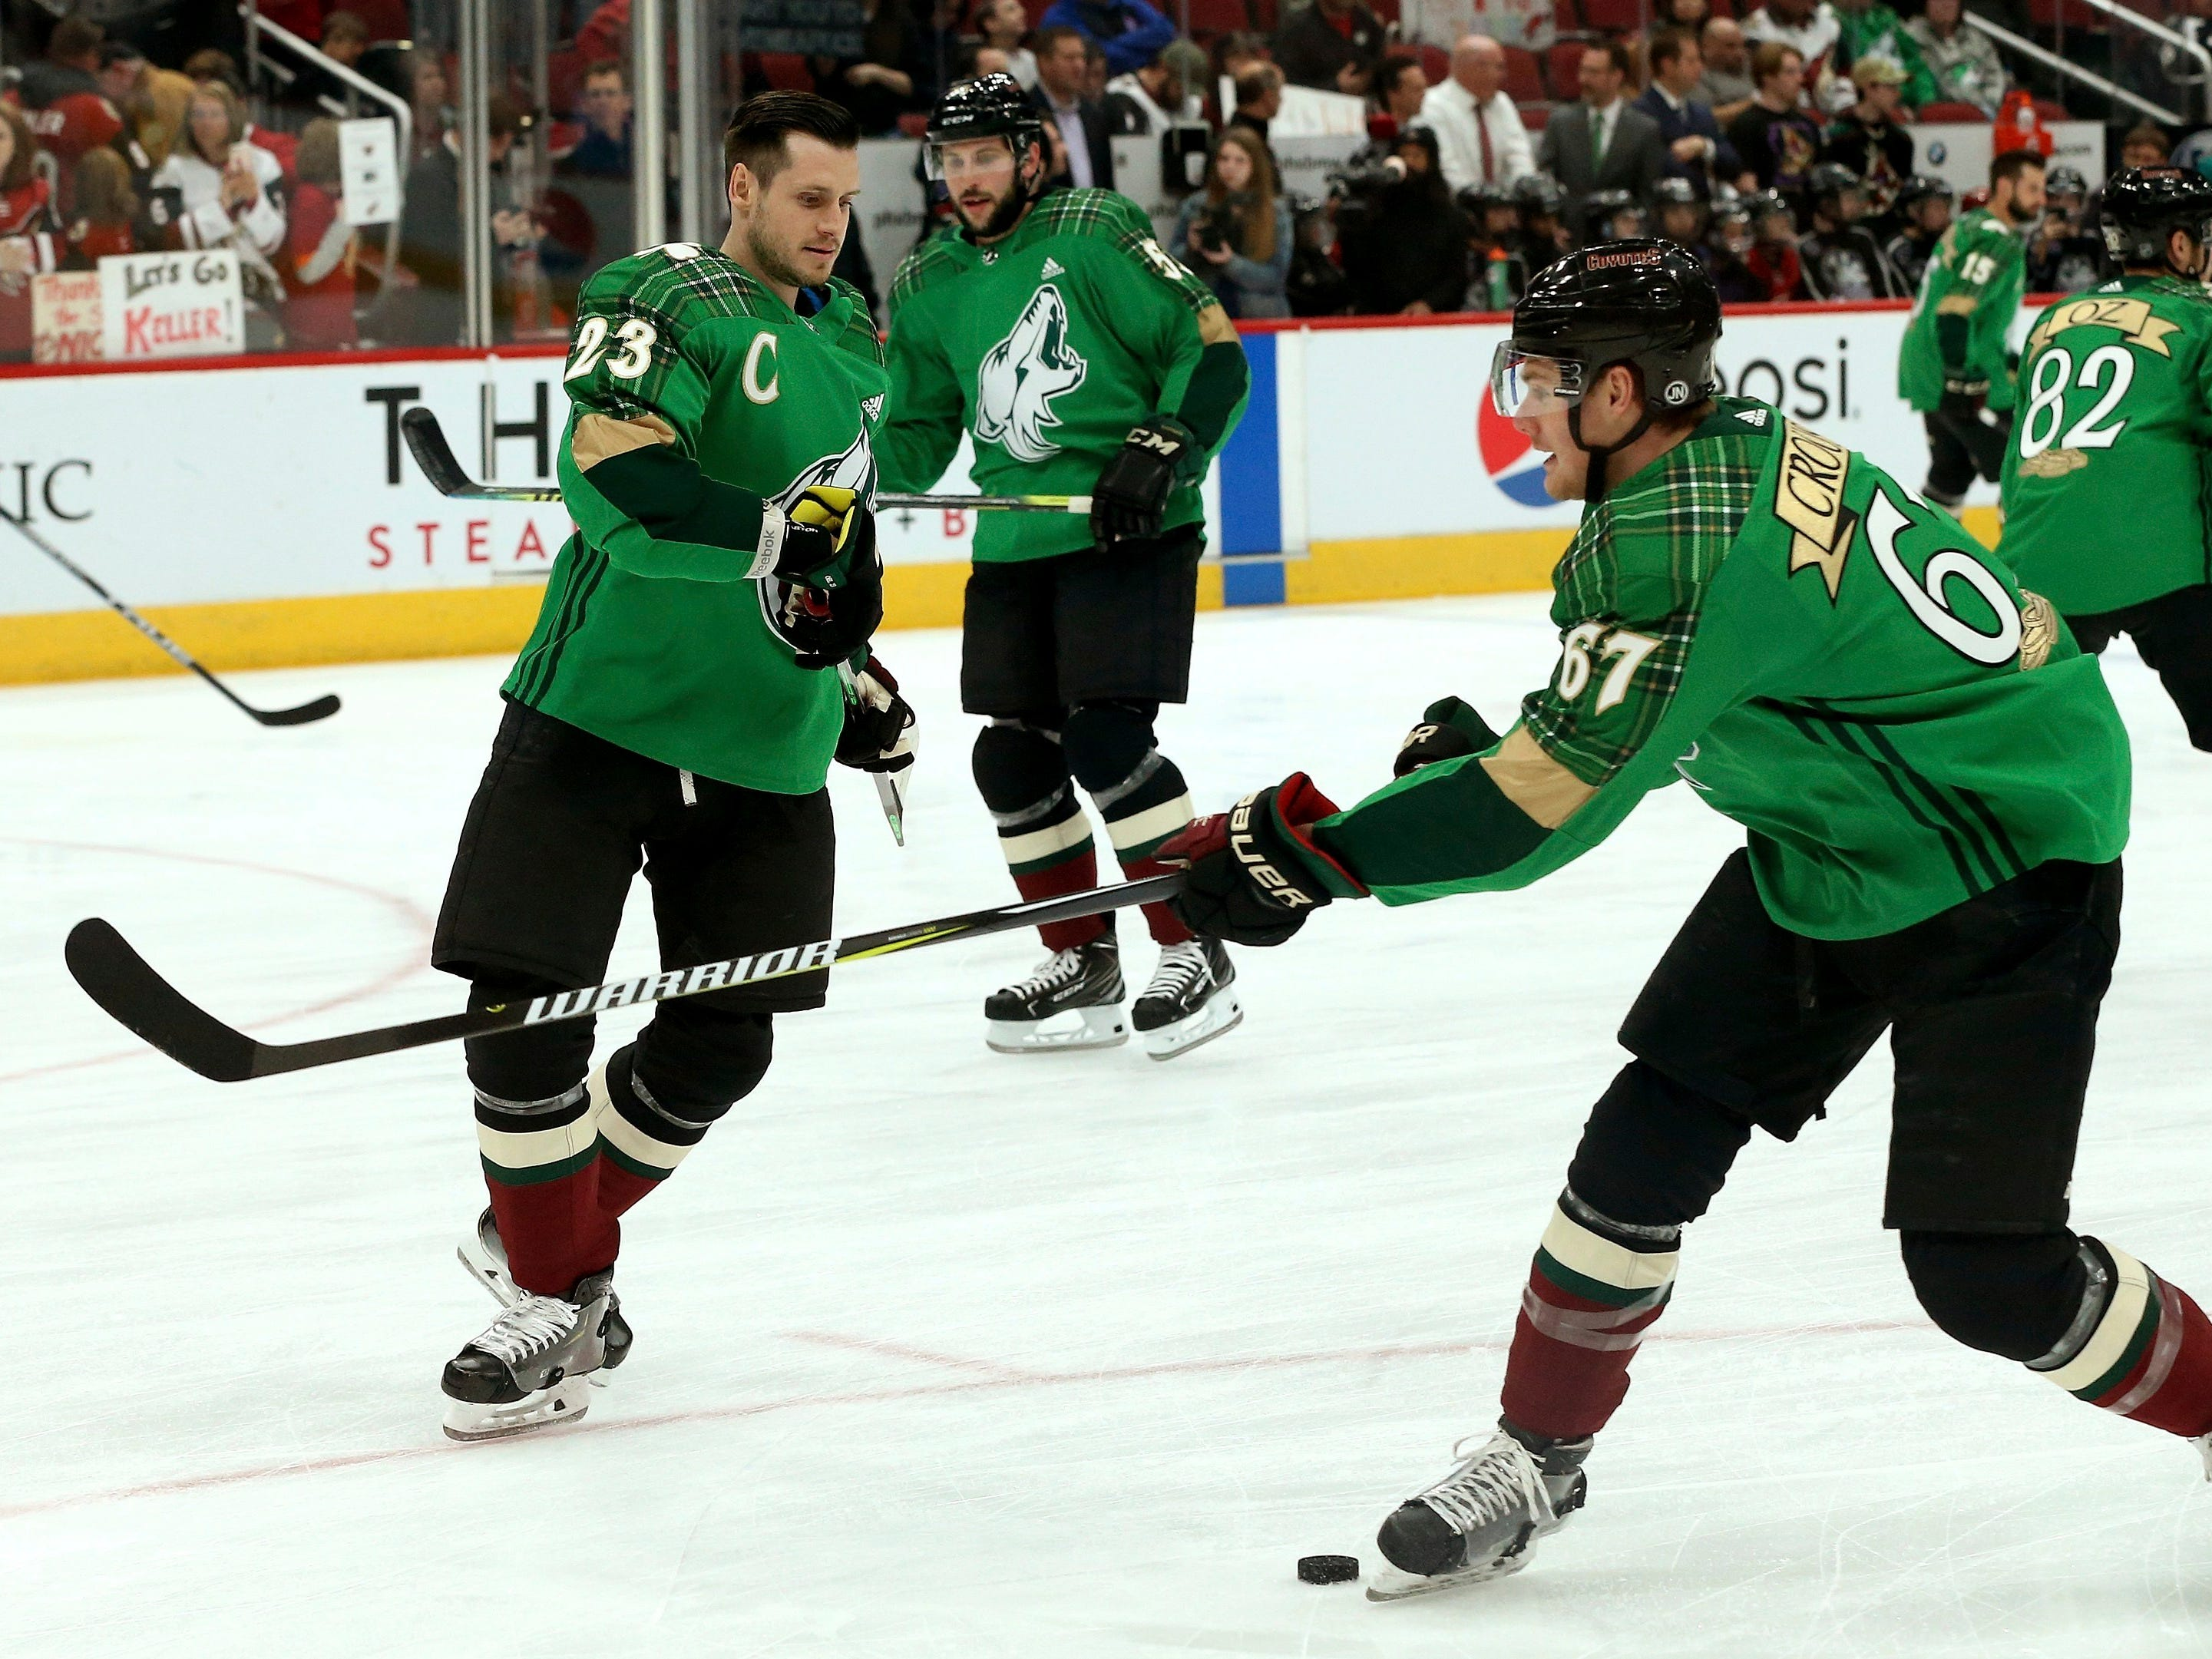 Arizona Coyotes' Lawson Crouse (67) fires a practice shot past Oliver Ekman-Larsson (23) as the entire team sports St. Patrick's Day green uniform tops prior to an NHL hockey game against the Edmonton Oilers Saturday, March 16, 2019, in Glendale, Ariz.